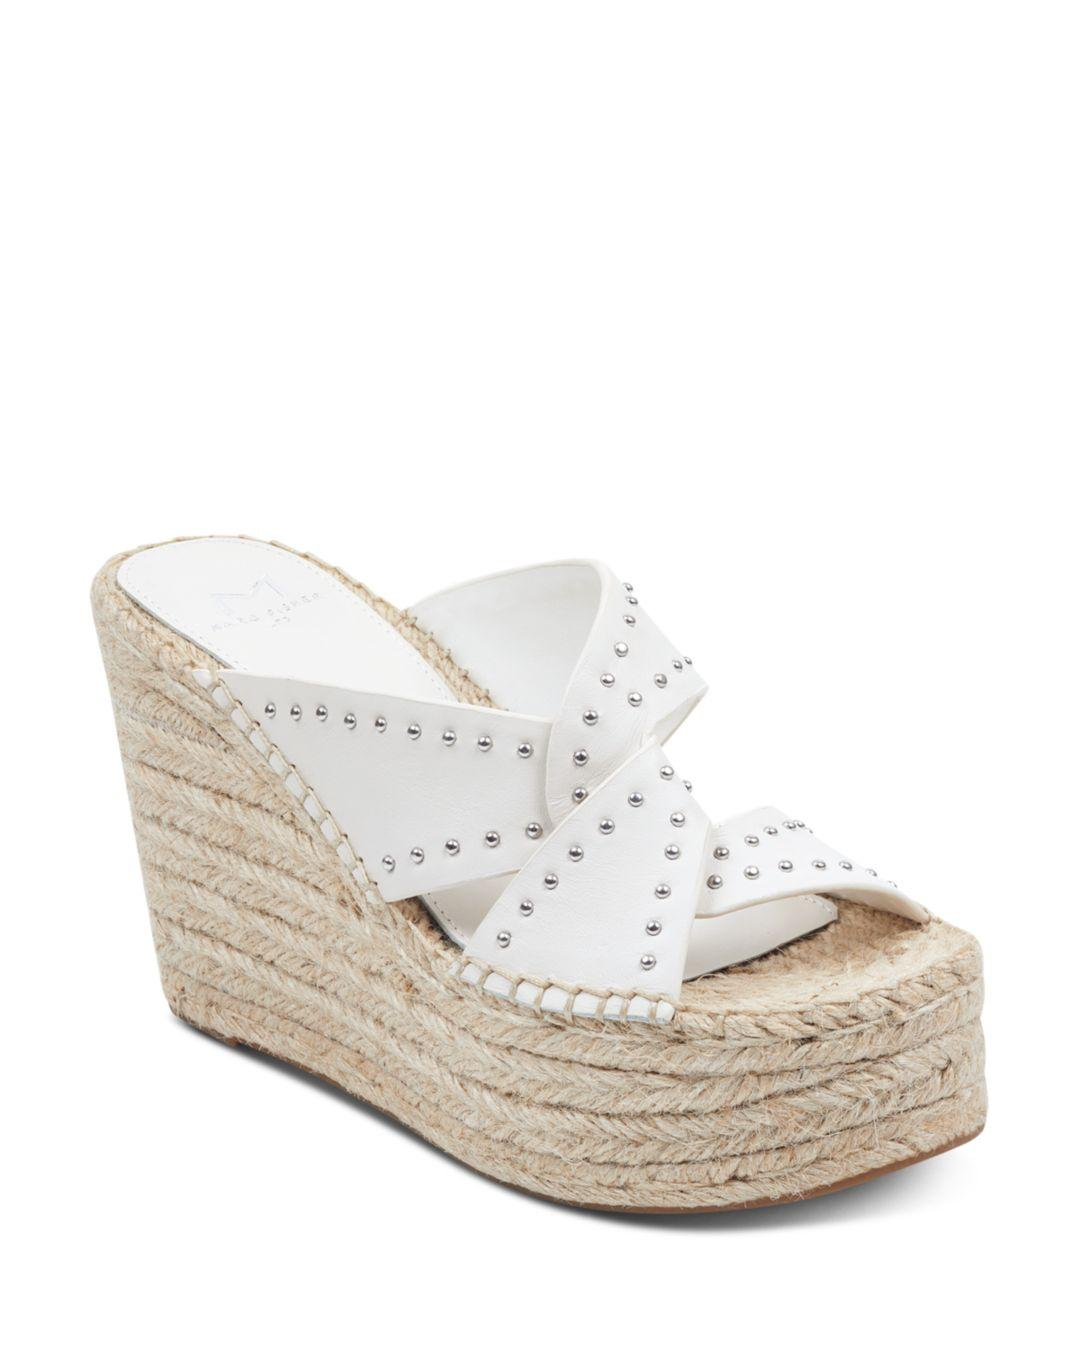 180f43028 Lyst - Marc Fisher Angelina Wedge Sandals in White - Save 26%